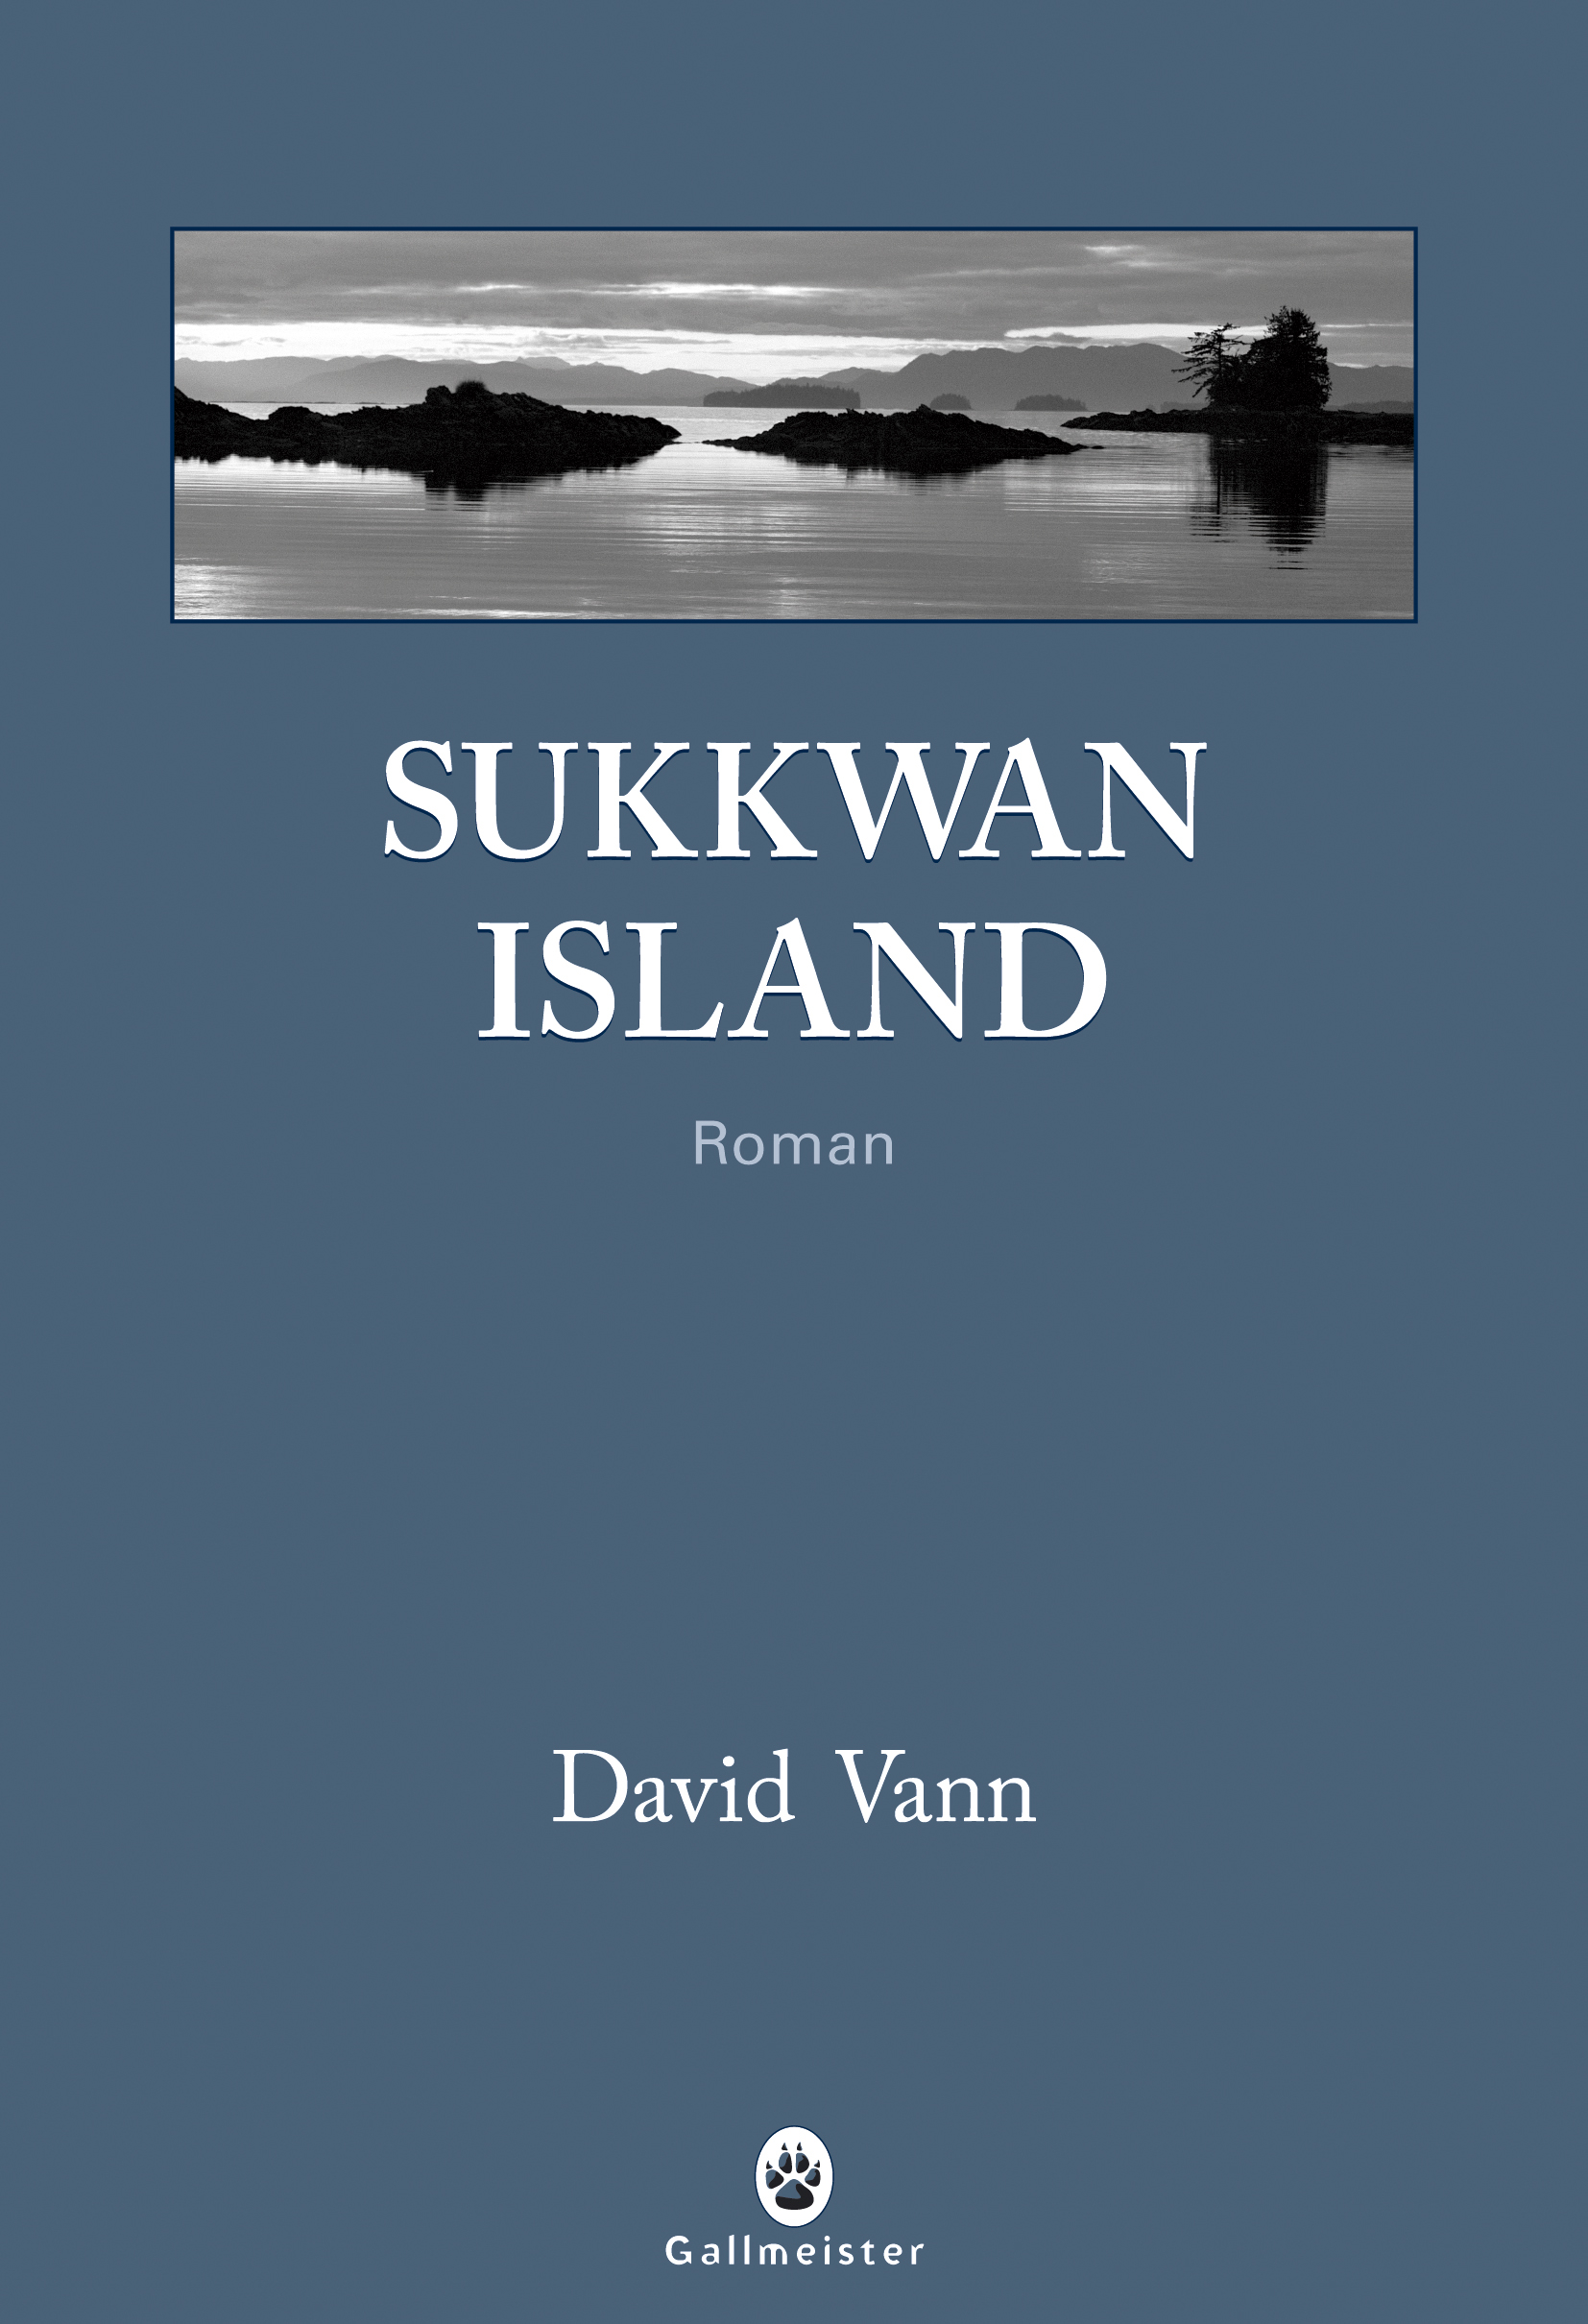 Sukkwan Island - David Vann - Editions Gallmeister